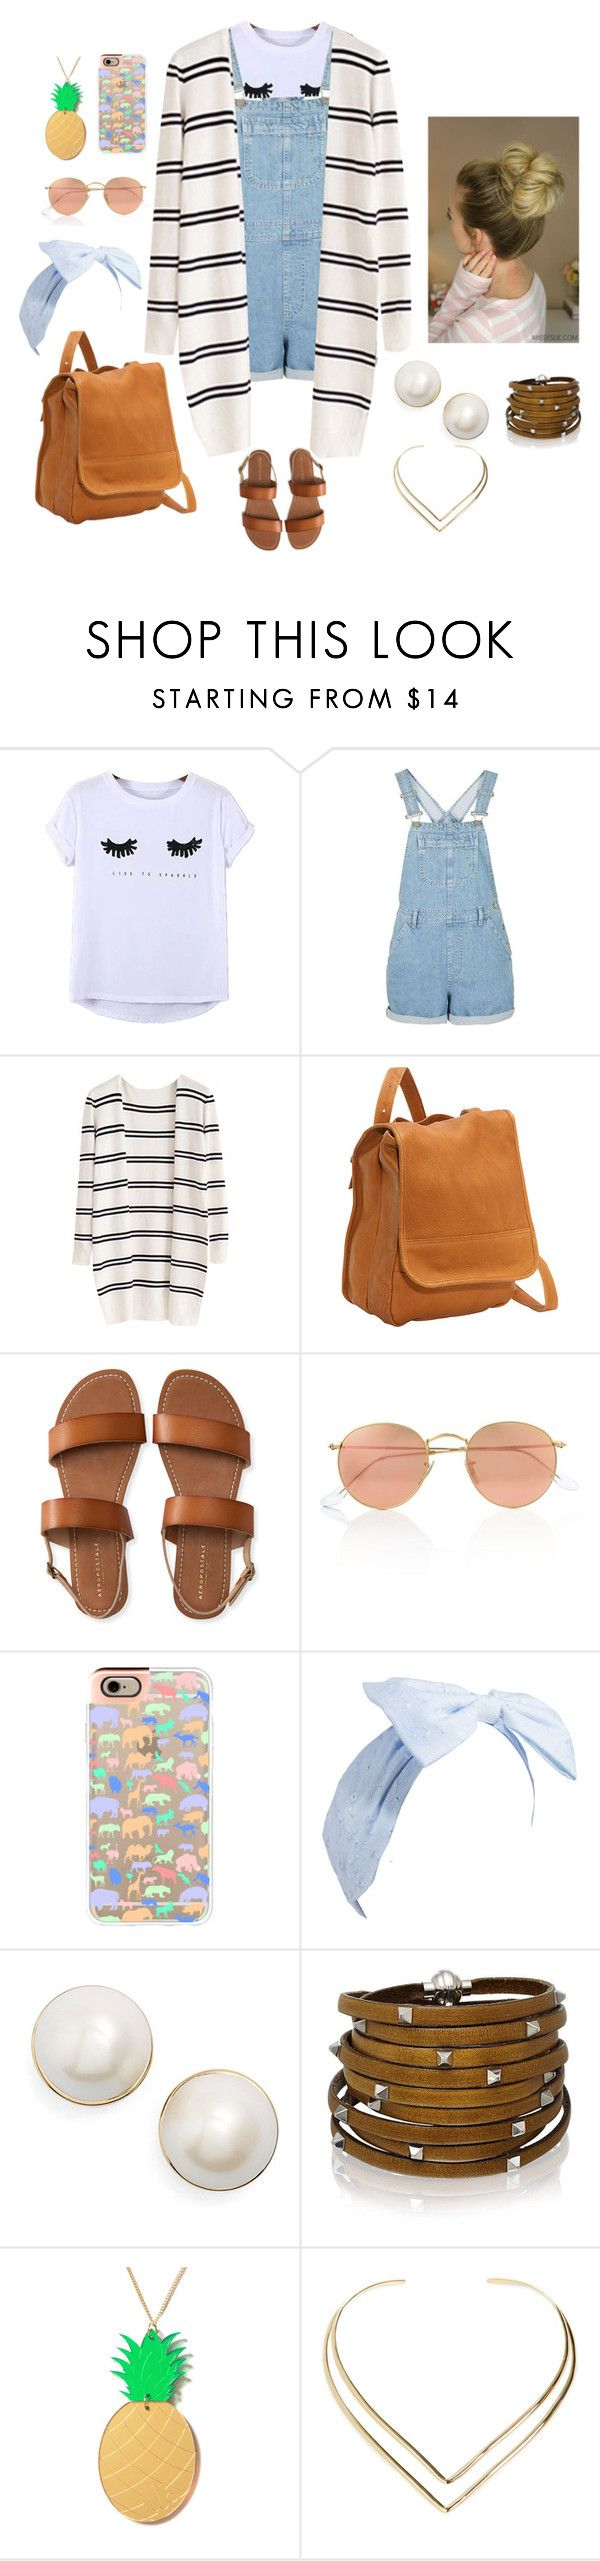 """""""Summer Outfit #2"""" by kmlomonte on Polyvore featuring Chicnova Fashion, Le Donne, Aéropostale, Ray-Ban, Casetify, Kate Spade, Sif Jakobs Jewellery, Lee Renee and Natalie B"""